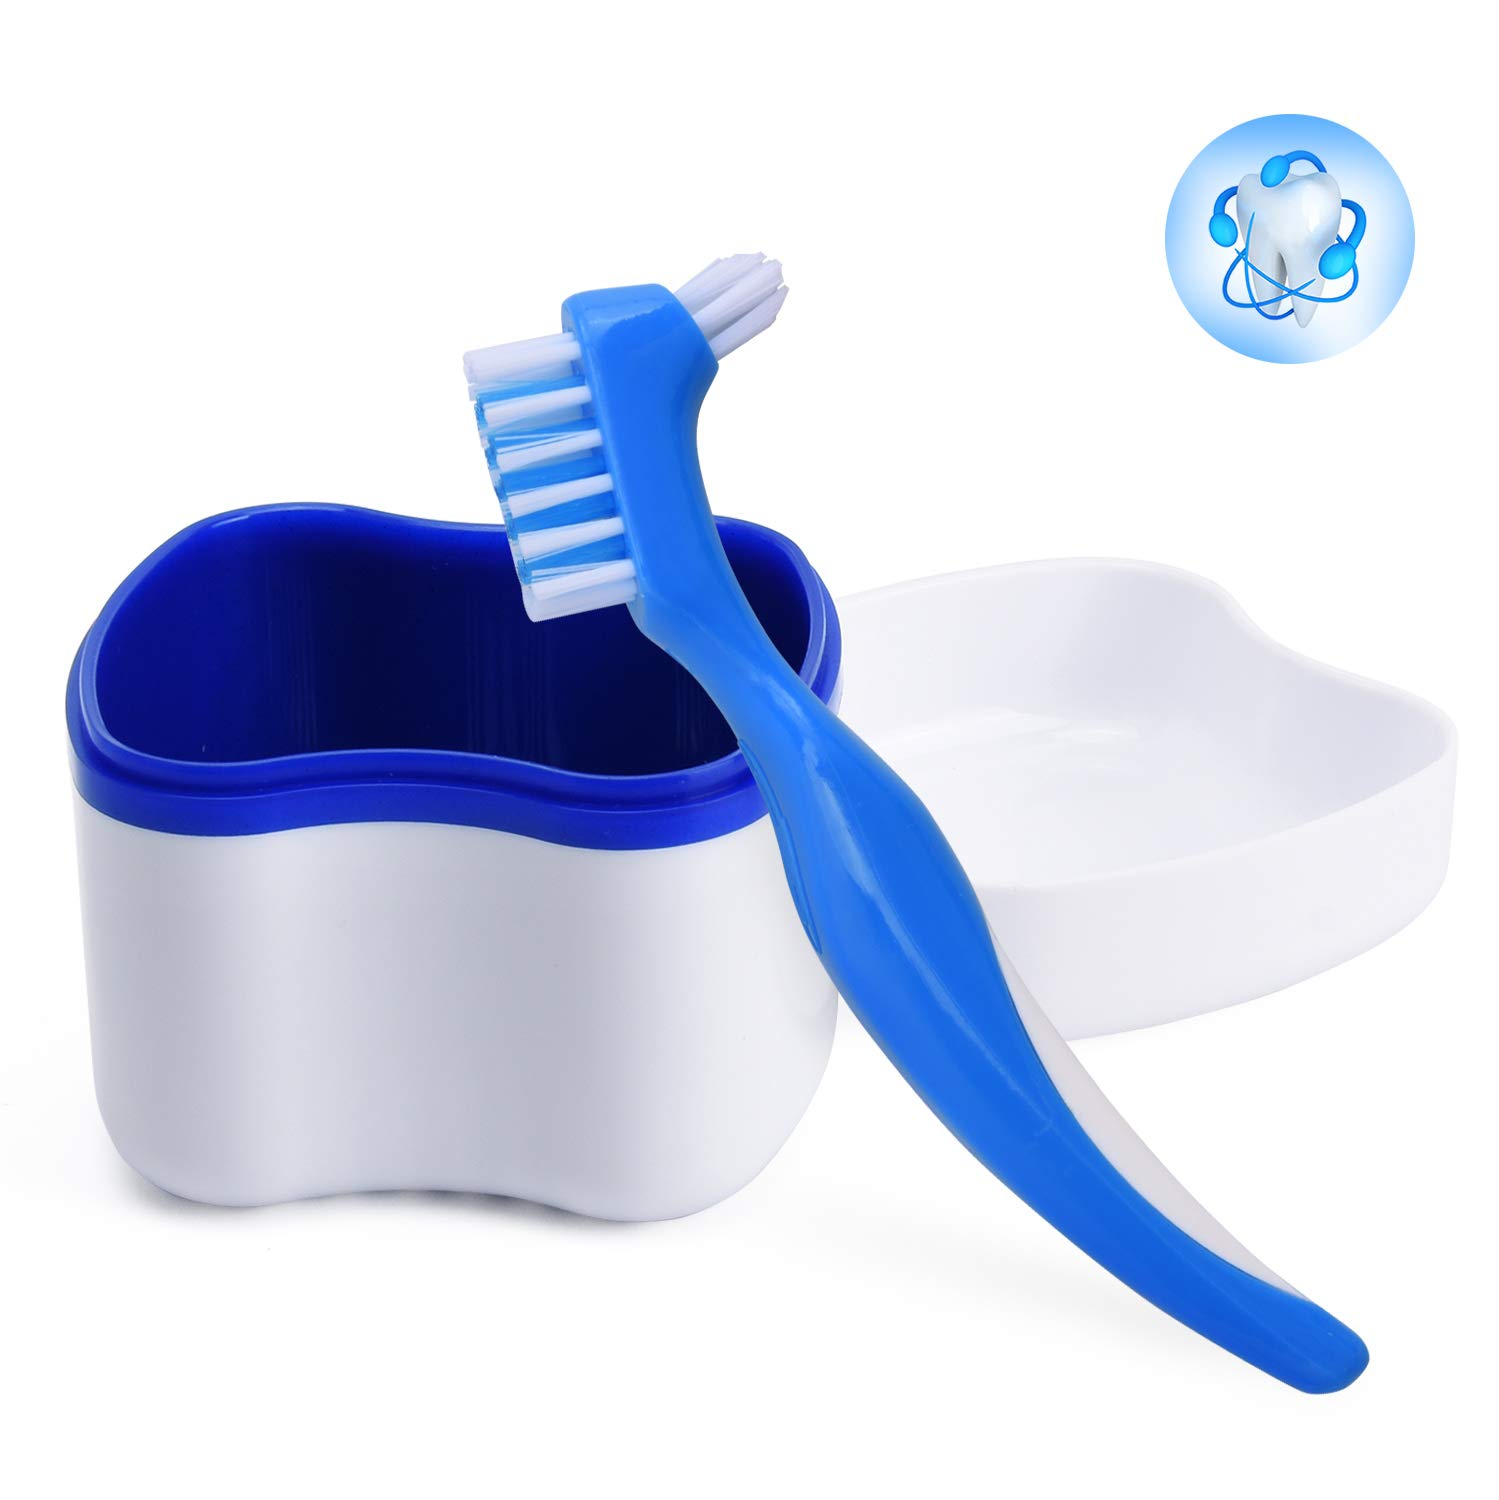 Denture Cleaning Case, Denture Box with Brush, Denture Bath Soaking Cup with Strainer Dental Retainer Container for Cleaner, Store and Retrieve